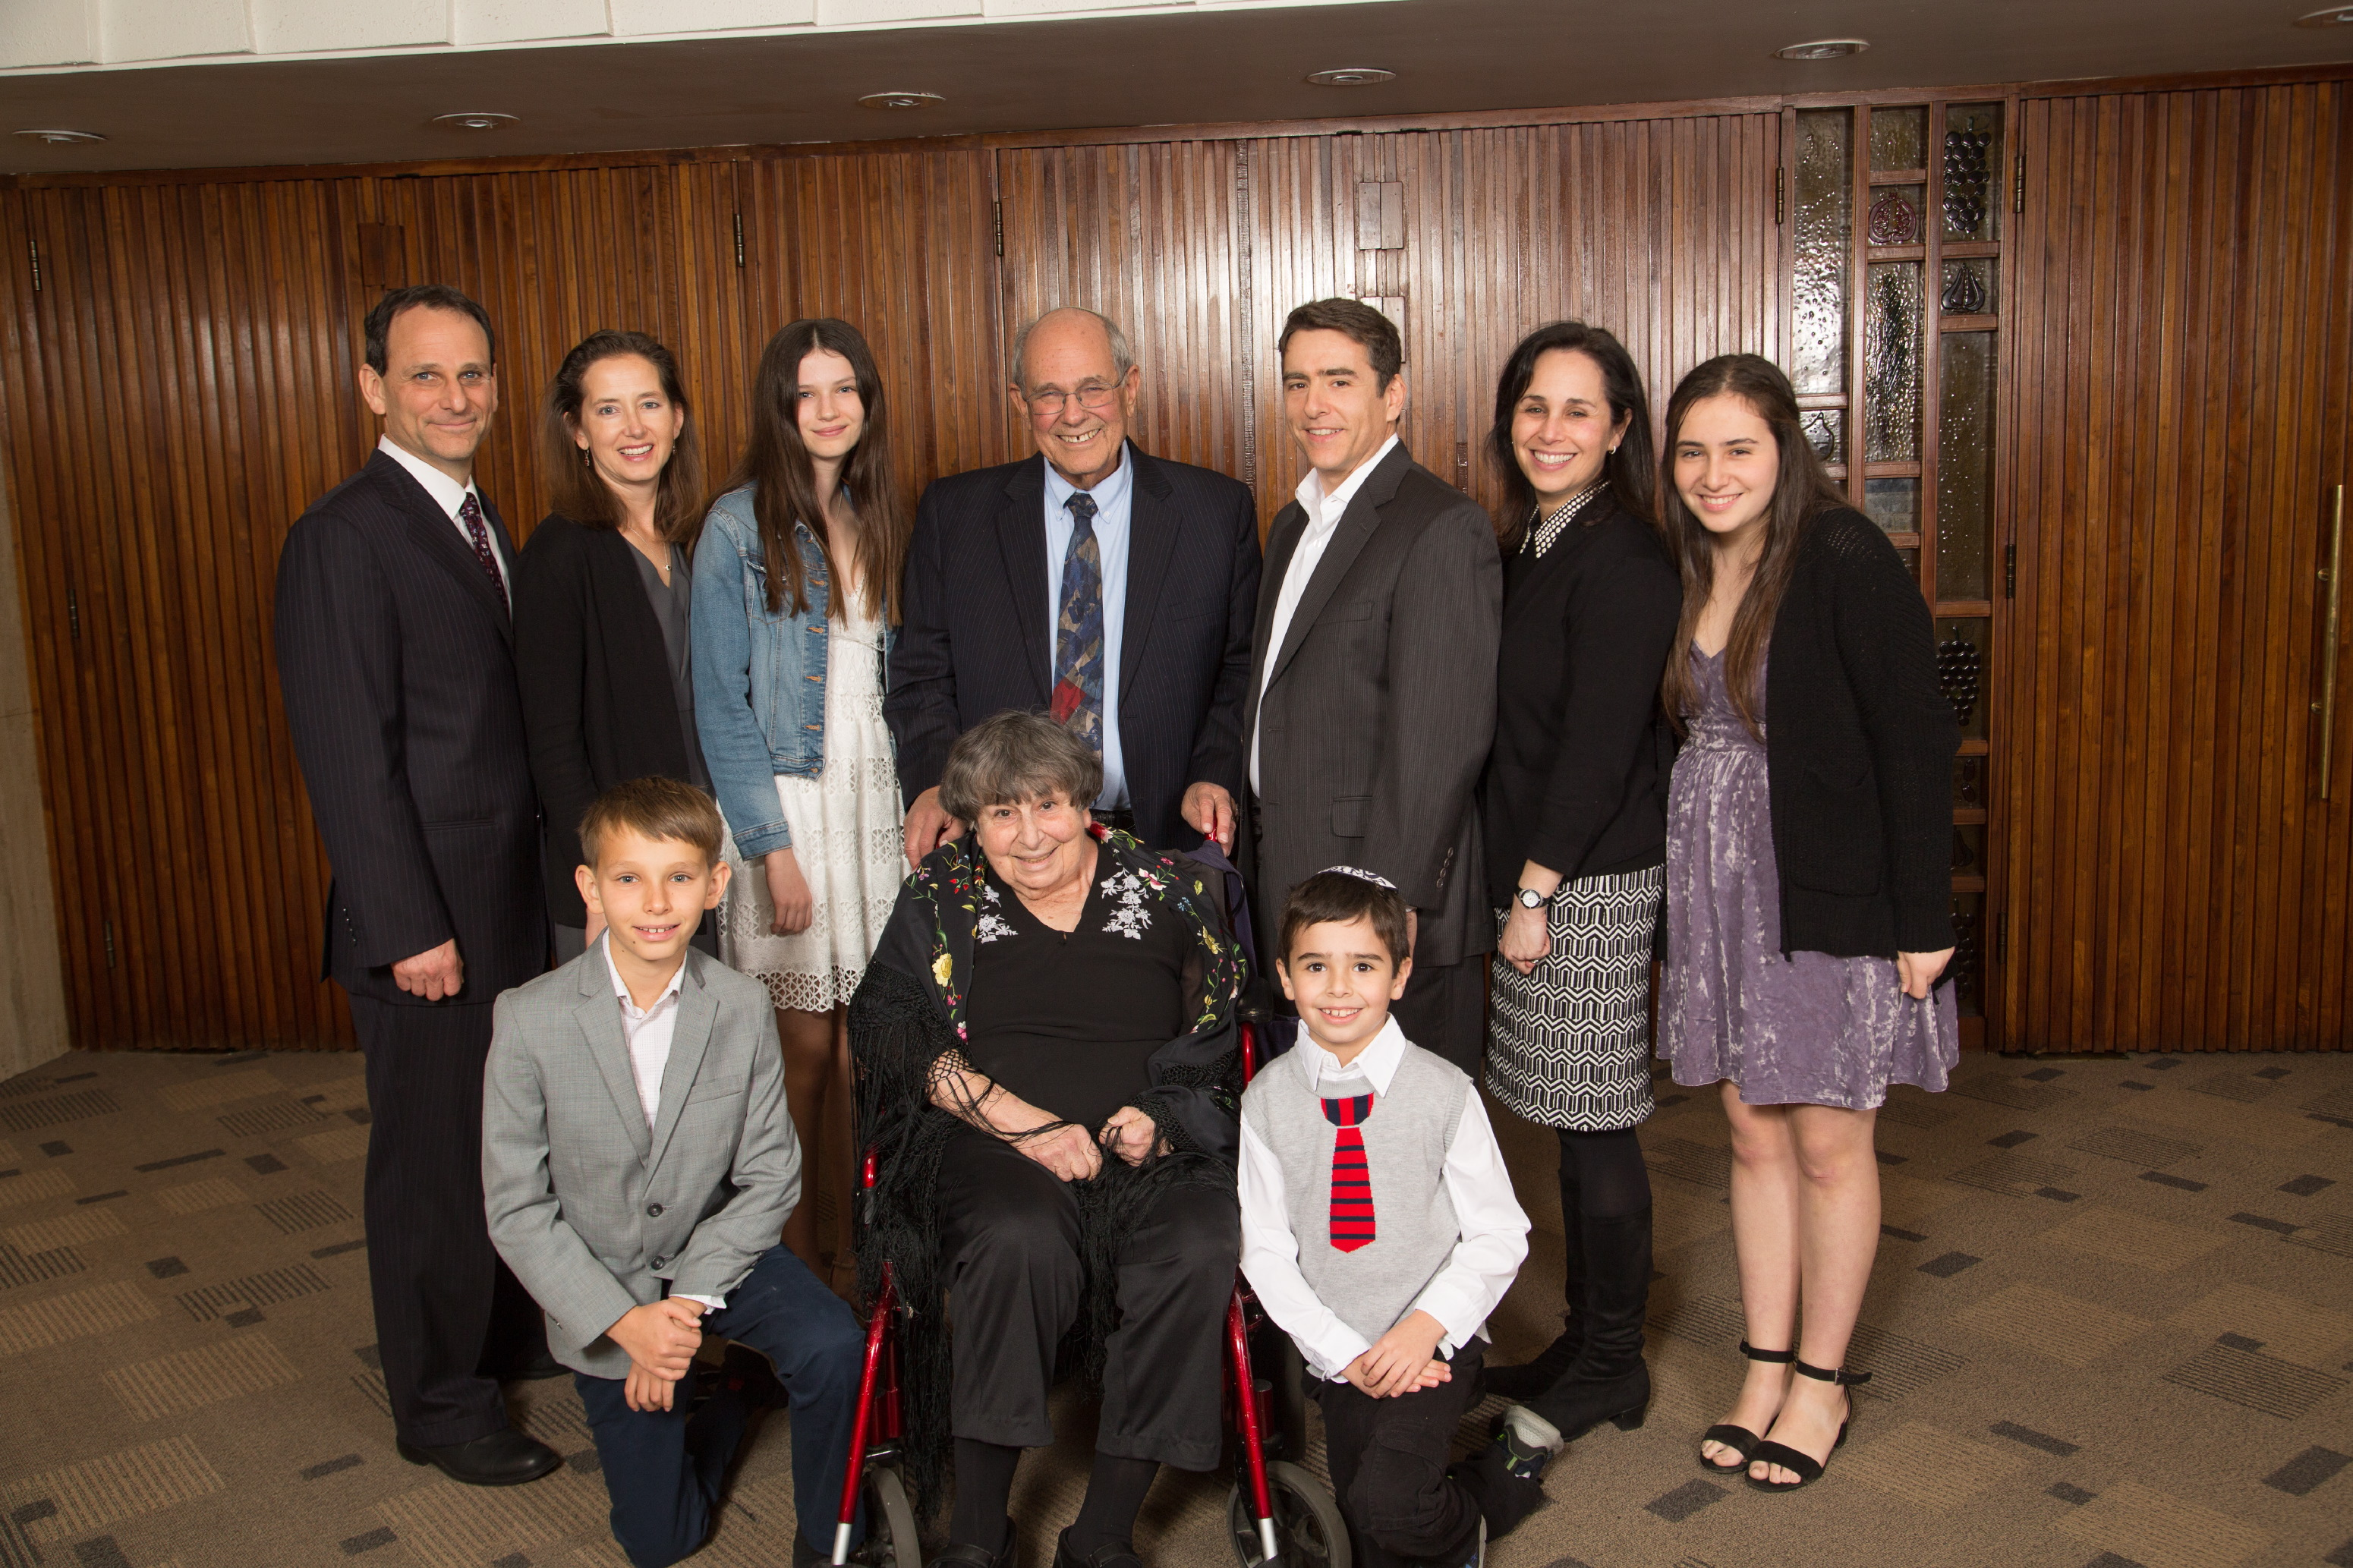 Honorees Marlynn and Rabbi Elliot Dorff with children and grandchildren